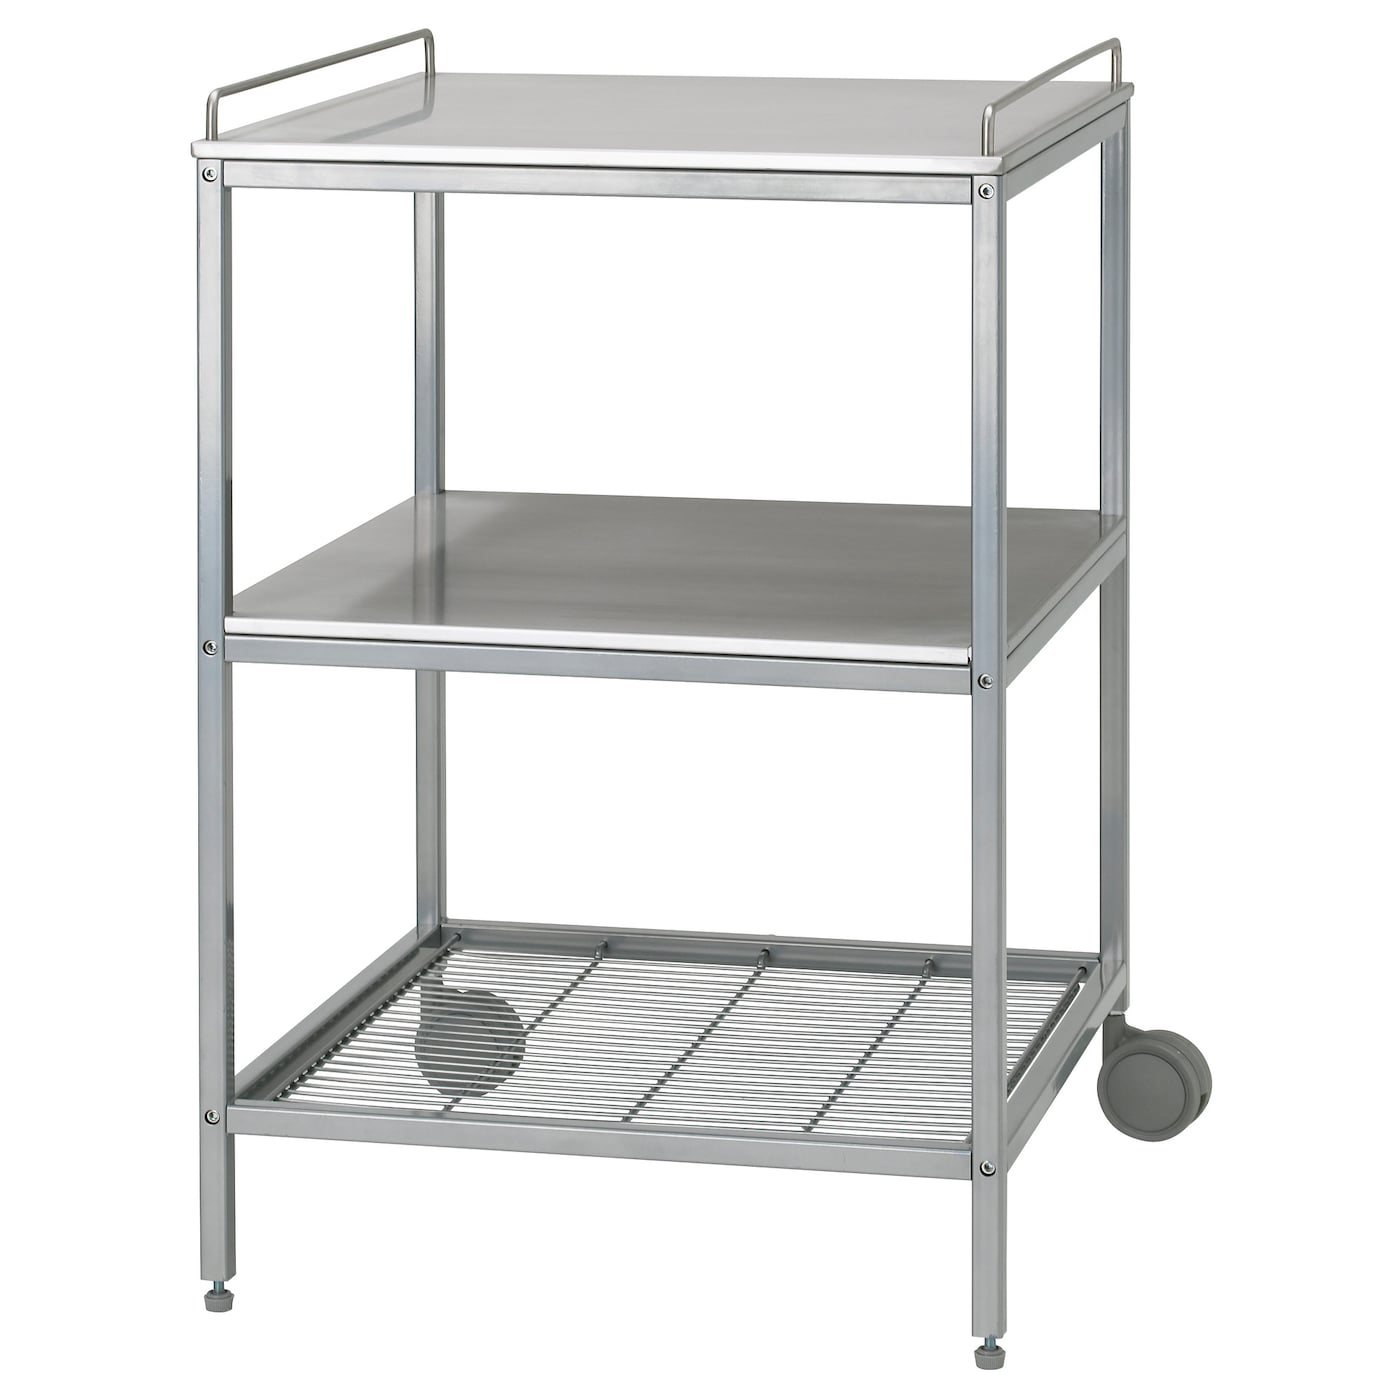 udden kitchen trolley silver colour stainless steel 54x54 cm ikea